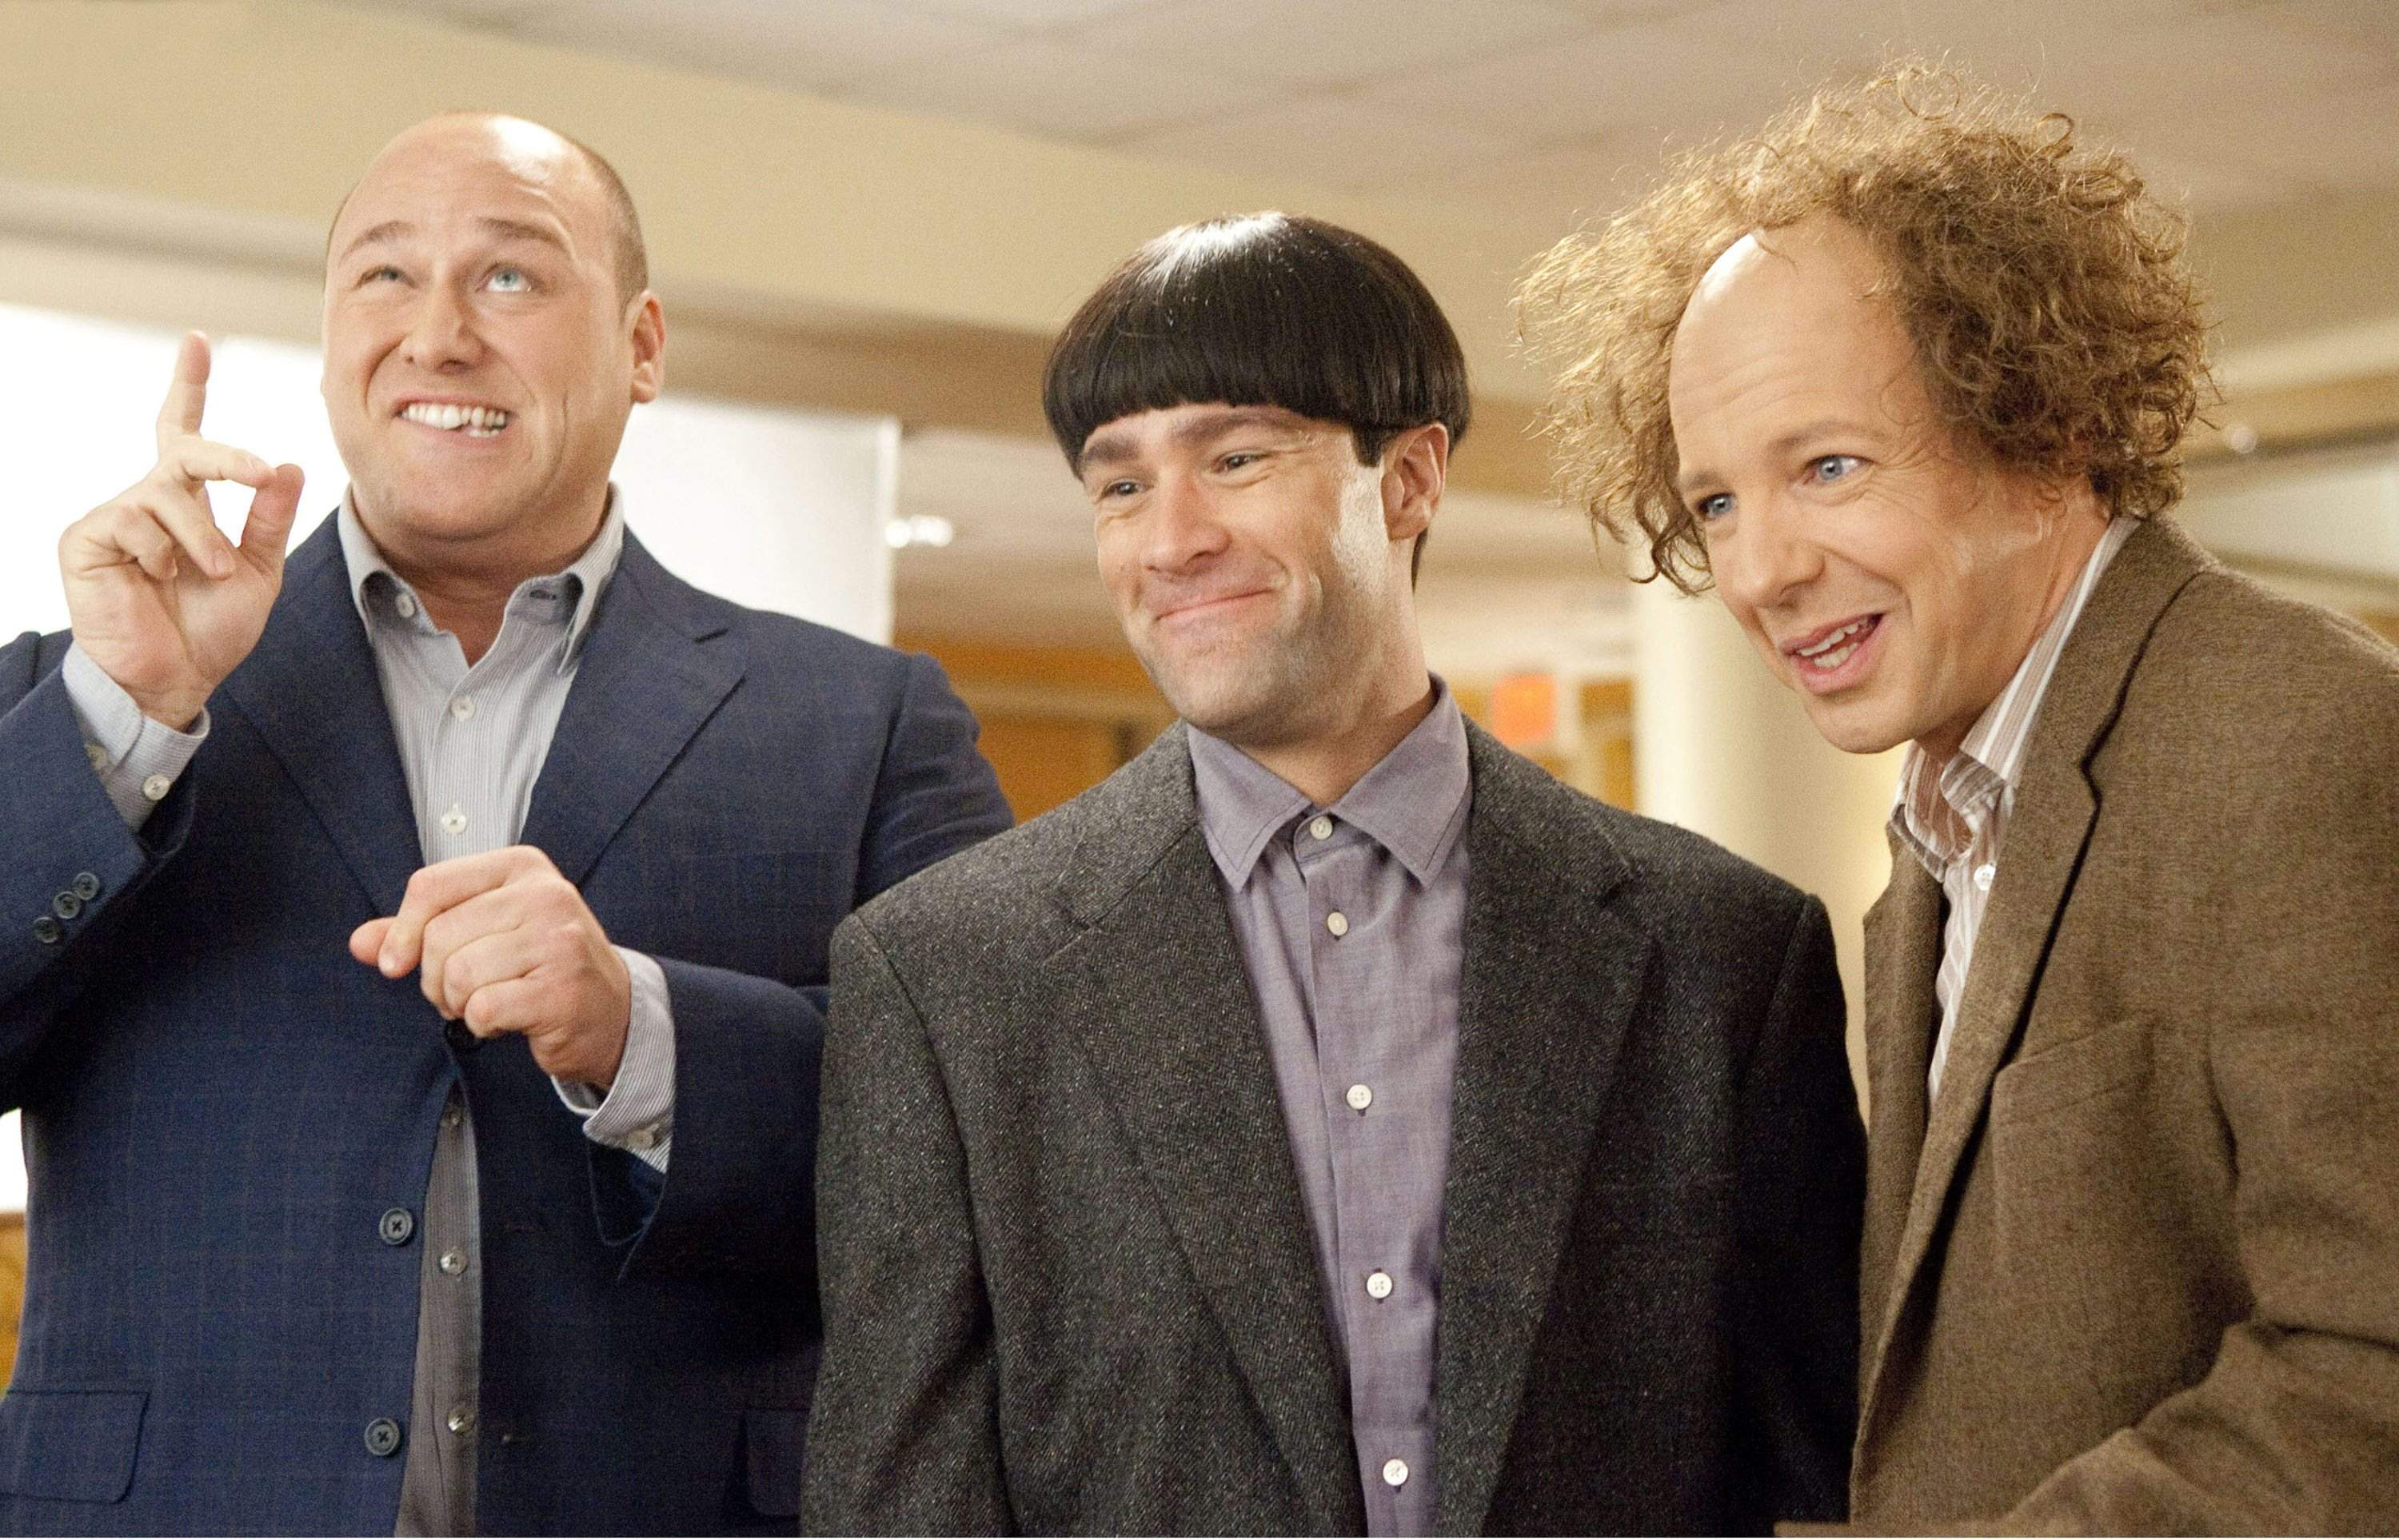 Will Sasso (left), Chris Diamantopoulos, and Sean Hayes star in &amp;ldquo;The Three Stooges.&amp;rdquo; <br /><br />ASSOCIATED PRESS